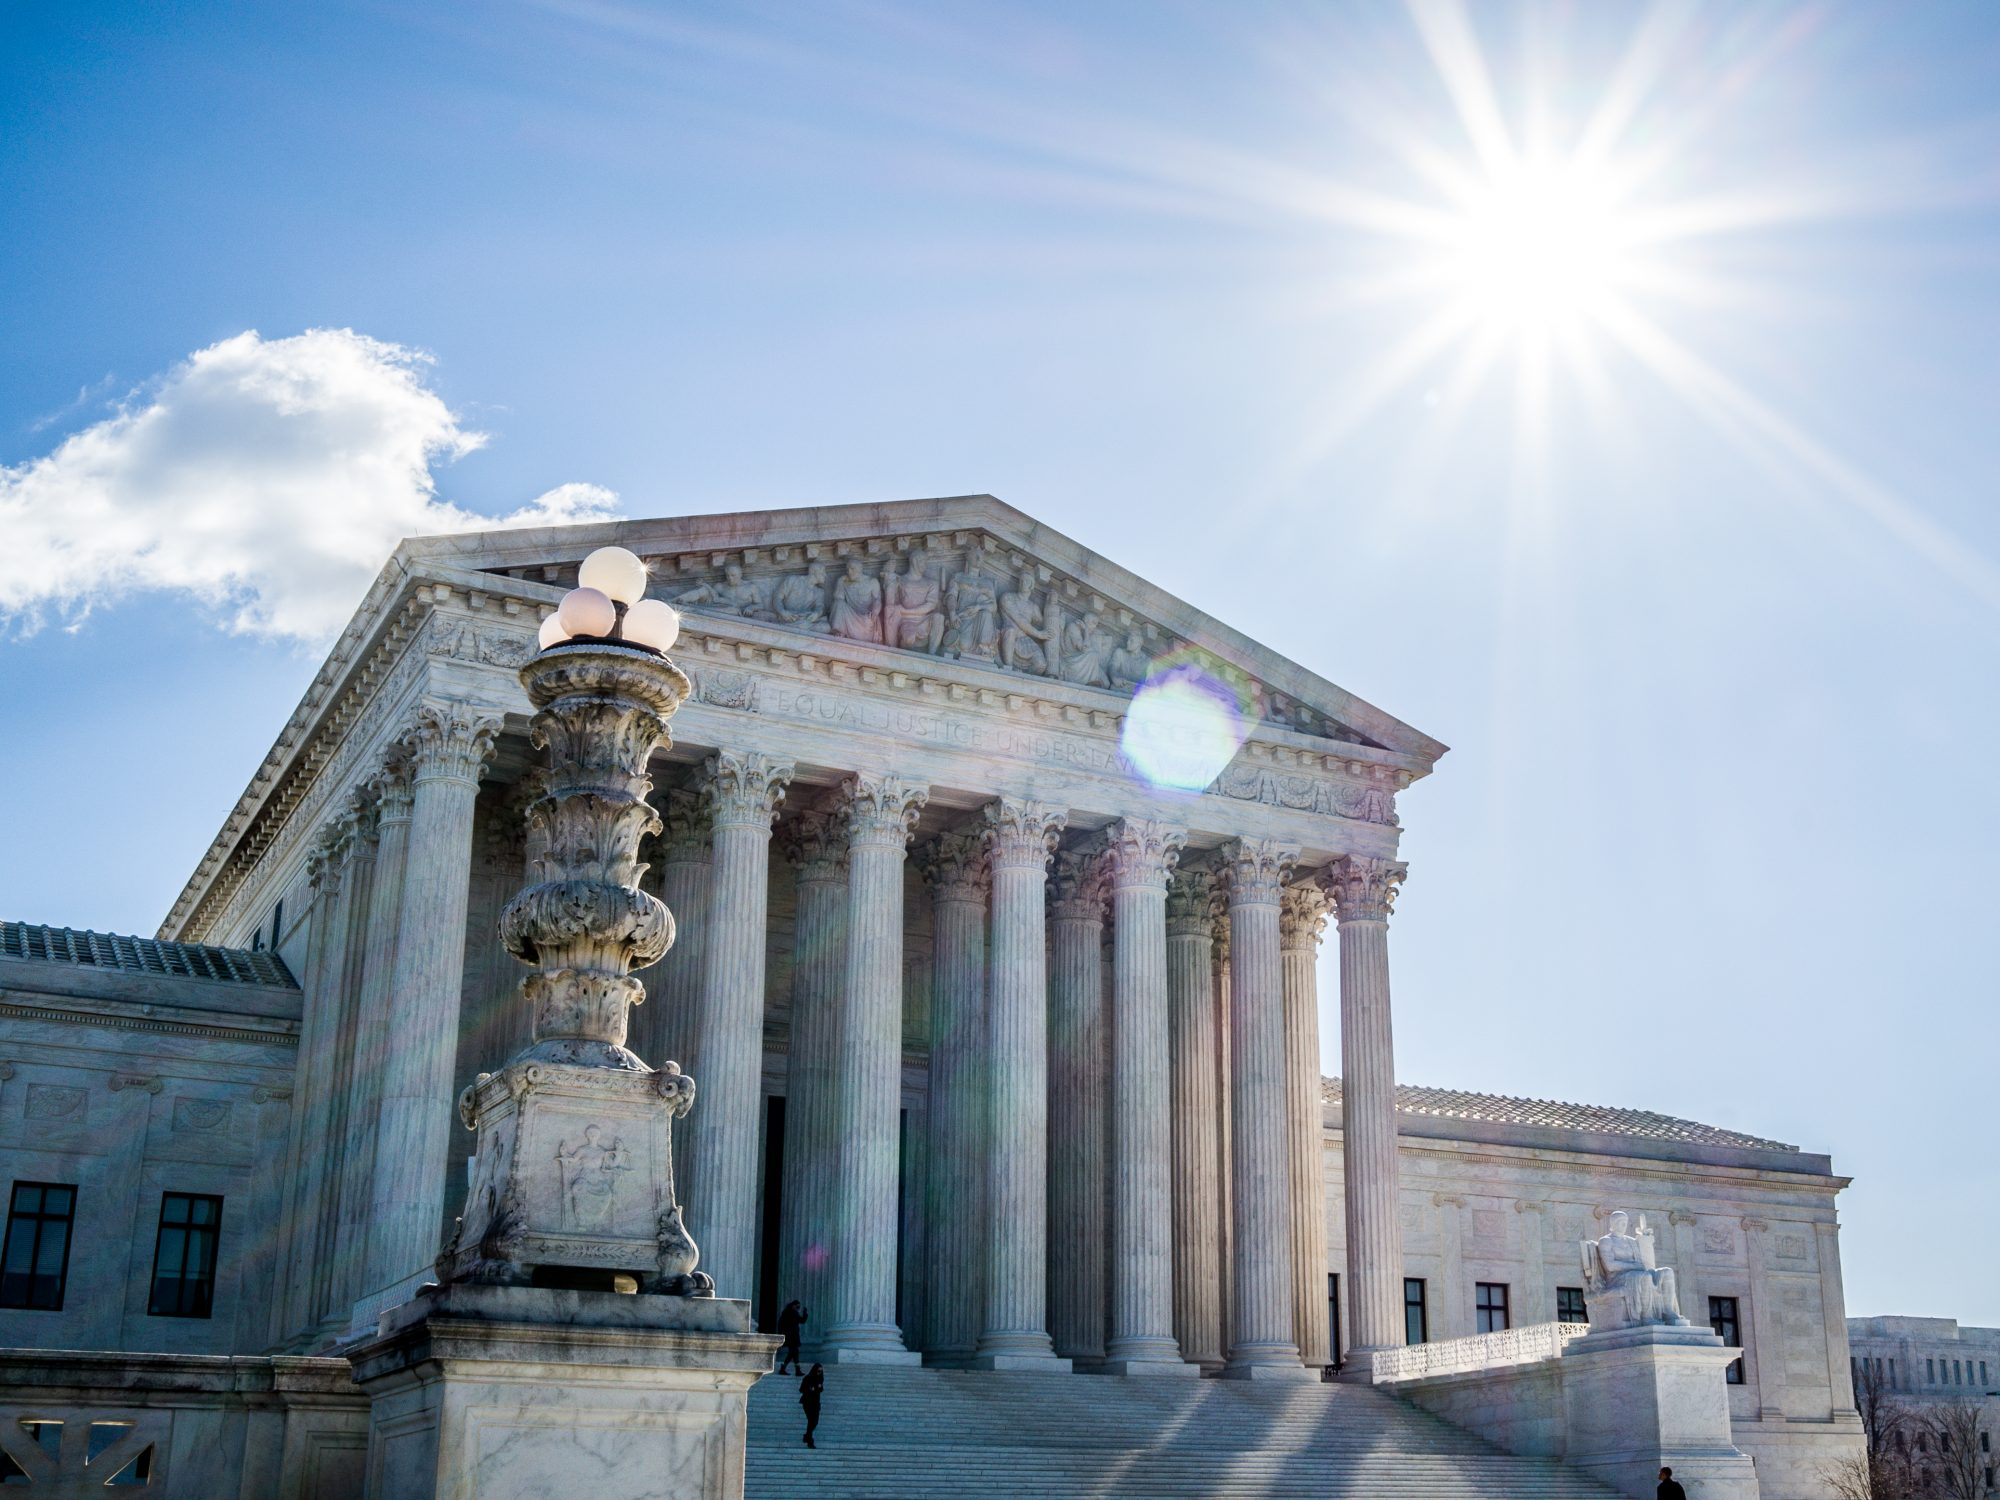 ACA insurers in the Supreme Court: Why consumers should pay attention